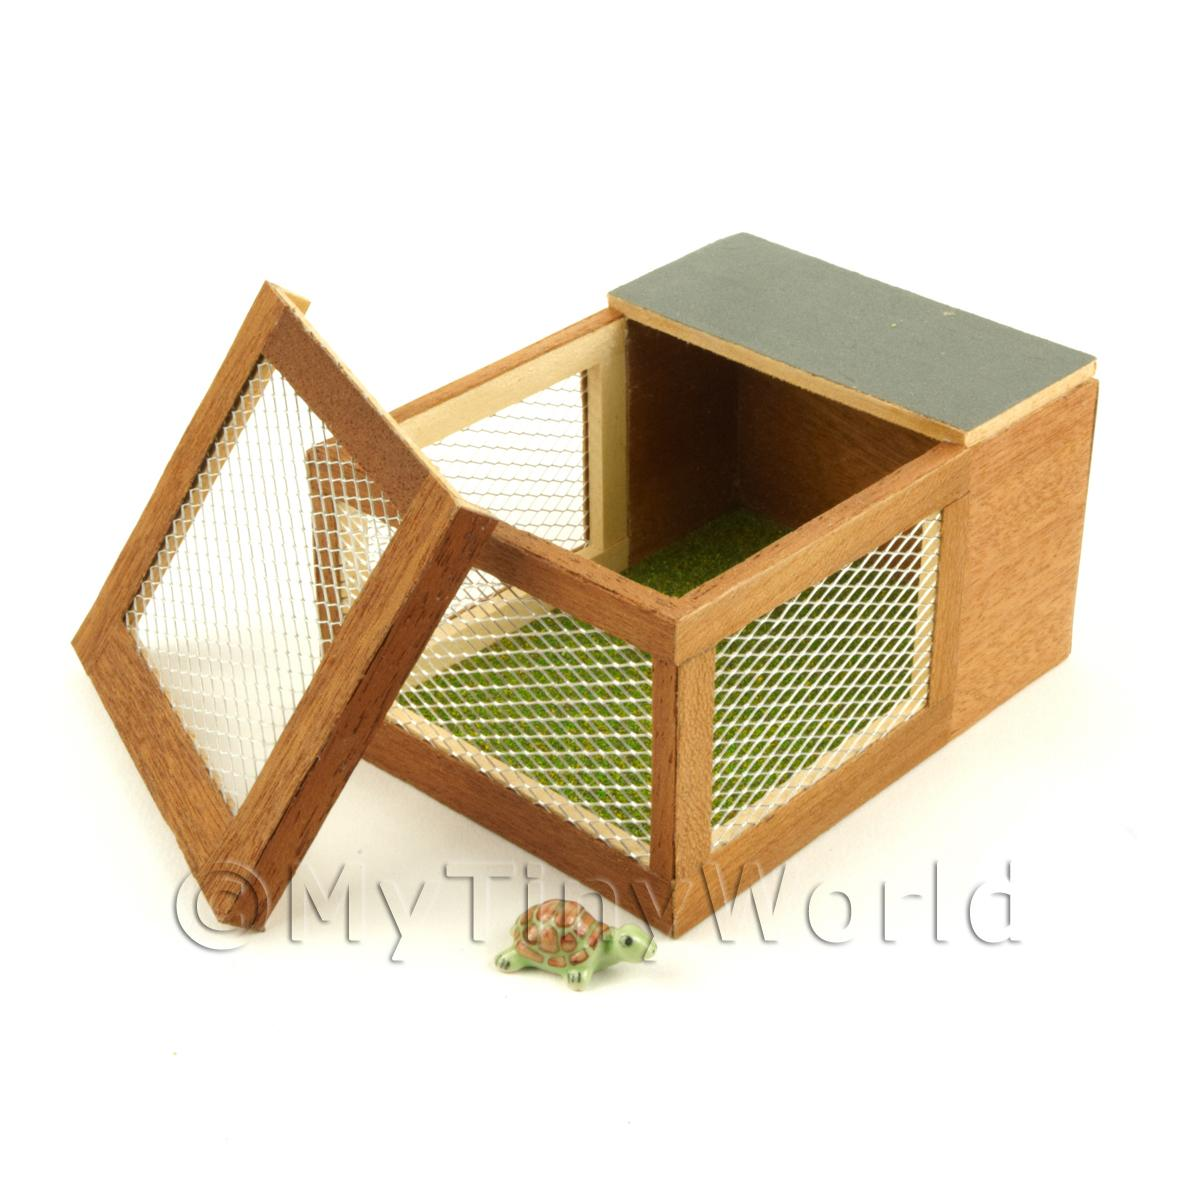 House Miniature Wooden Animal  Hutch With A Green And Brown Tortoise